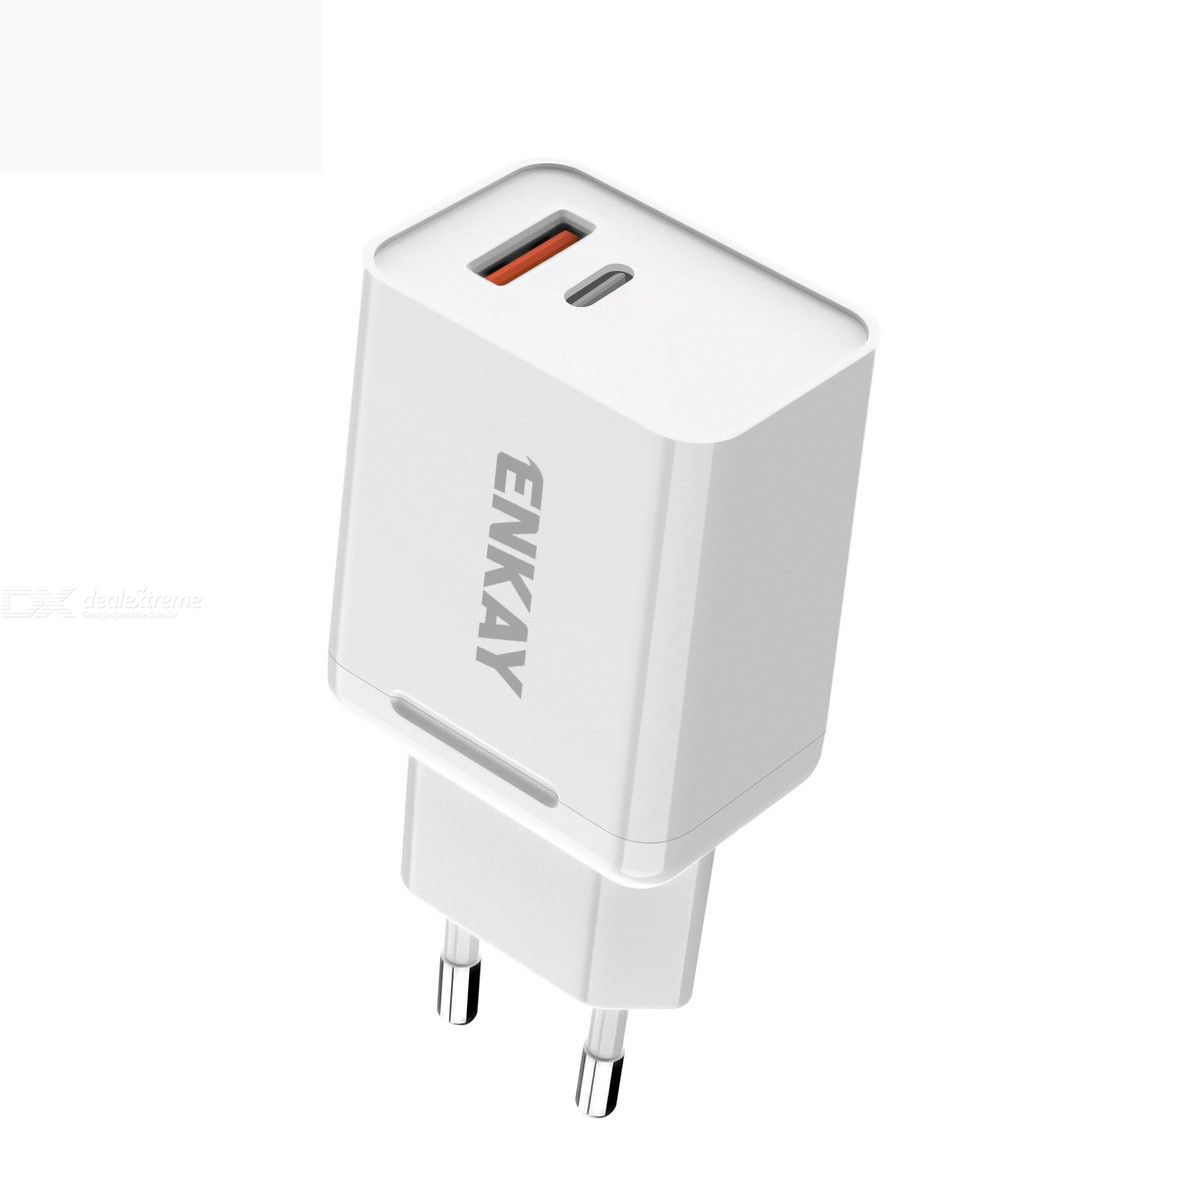 Enkay hat-prince t030 18w 3a pd+qc 3.0 fast charging travel charger power adapter, eu plug